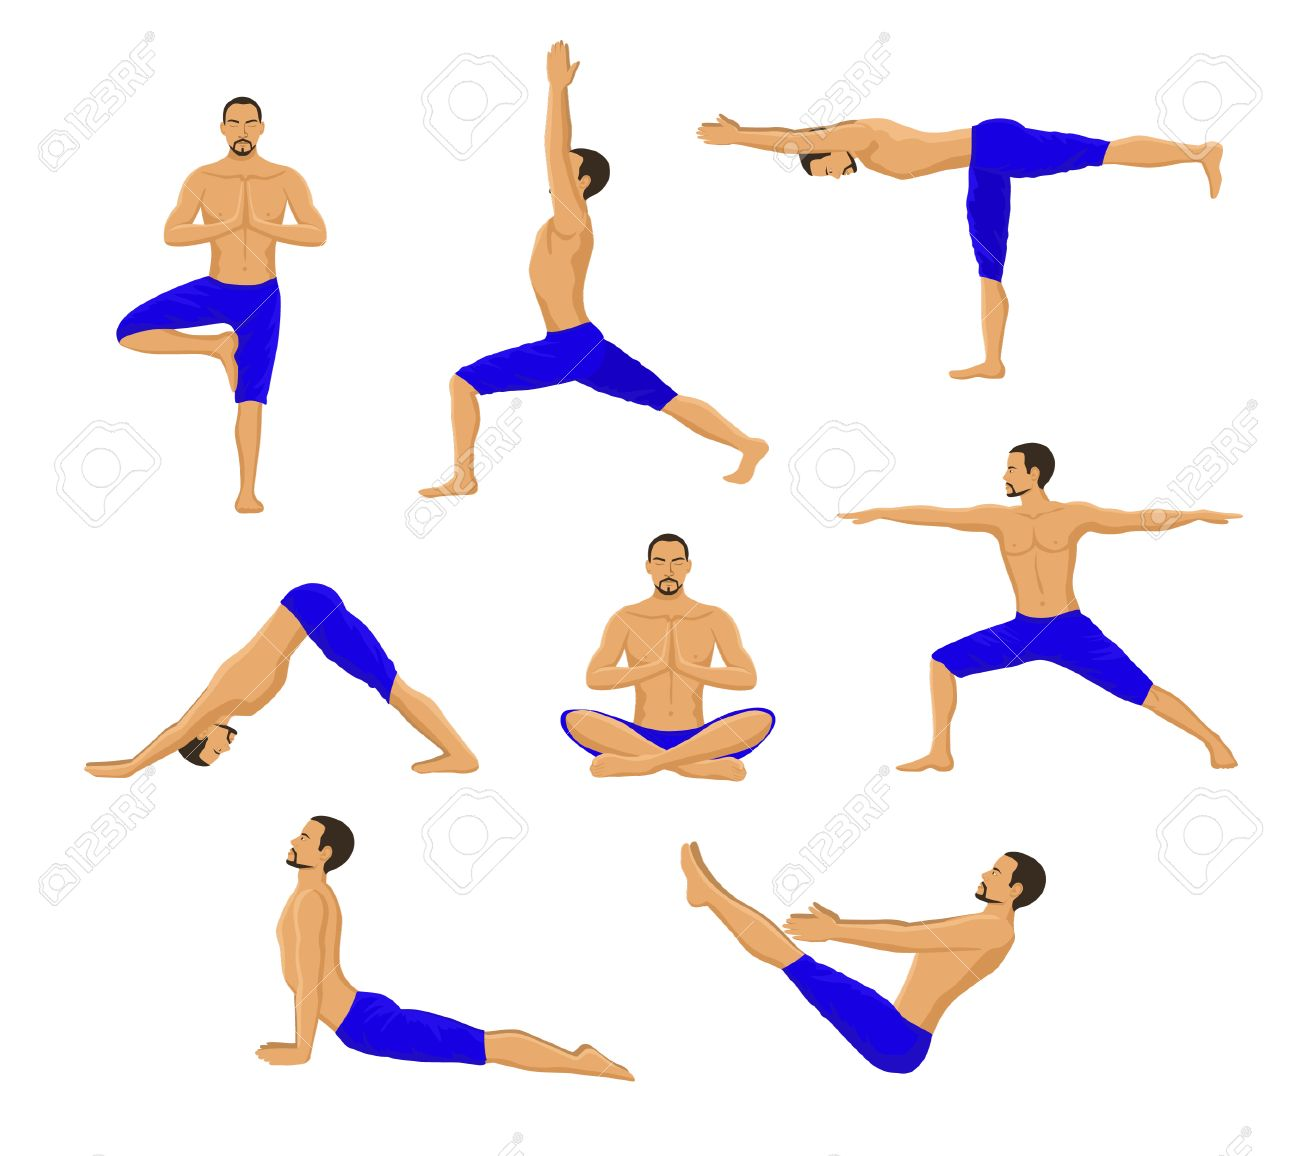 Man Doing Yoga Asanas Tree Pose Warrior 1 2